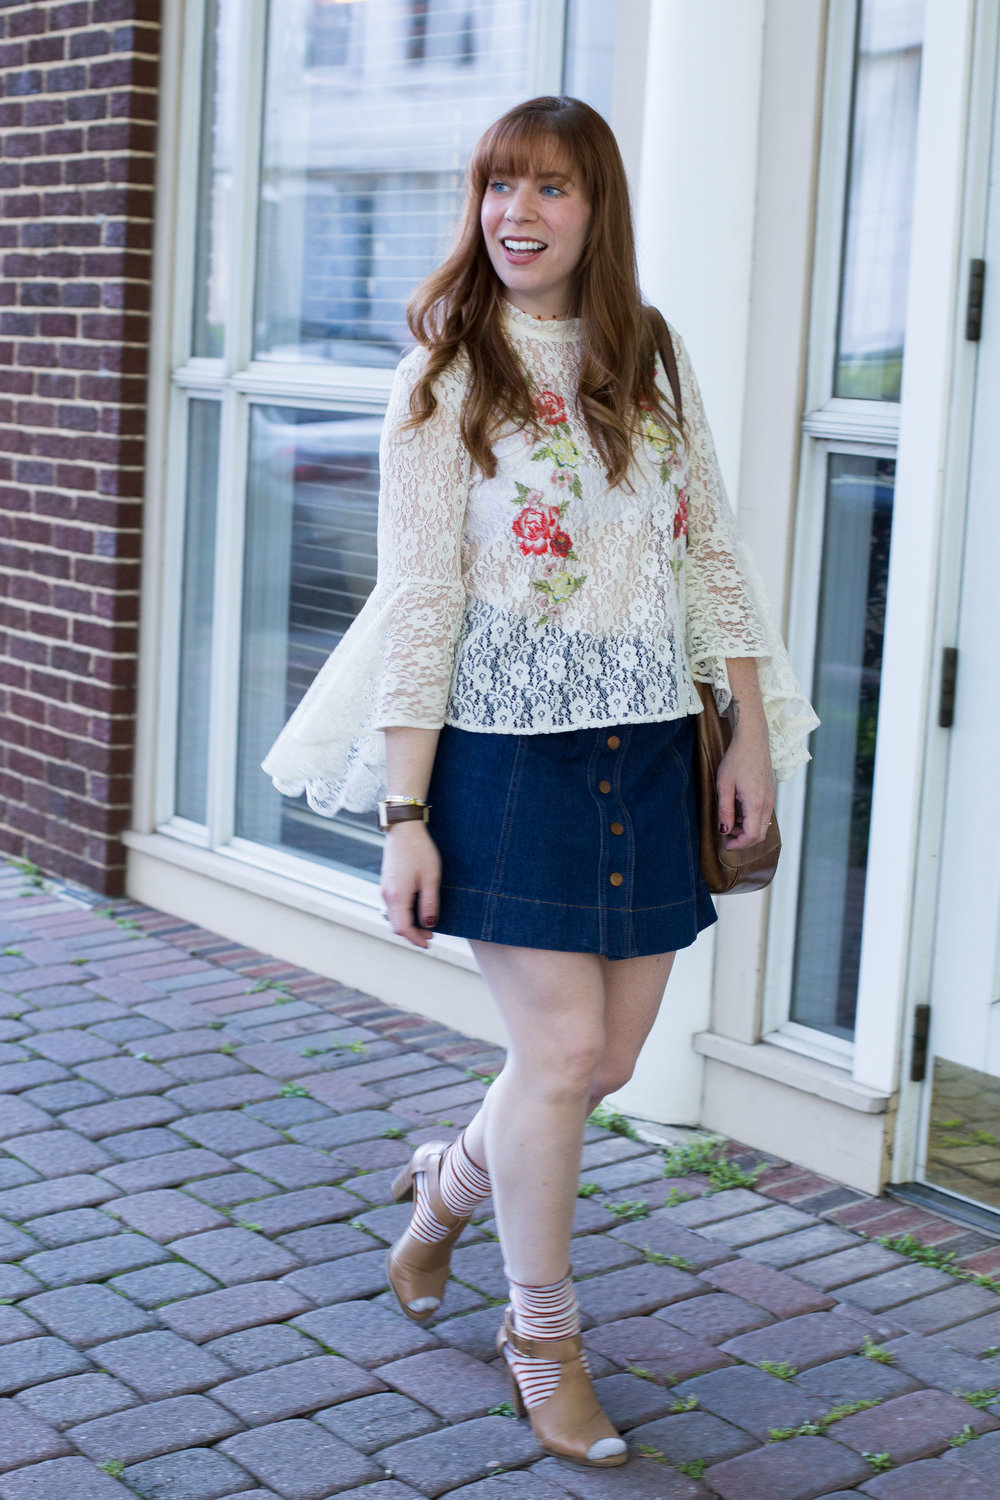 Outfit details that harken back to the 60s are pretty much my favorite thing. Lace, bell sleeves, embroidery, and denim. This summer outfit is a winner.